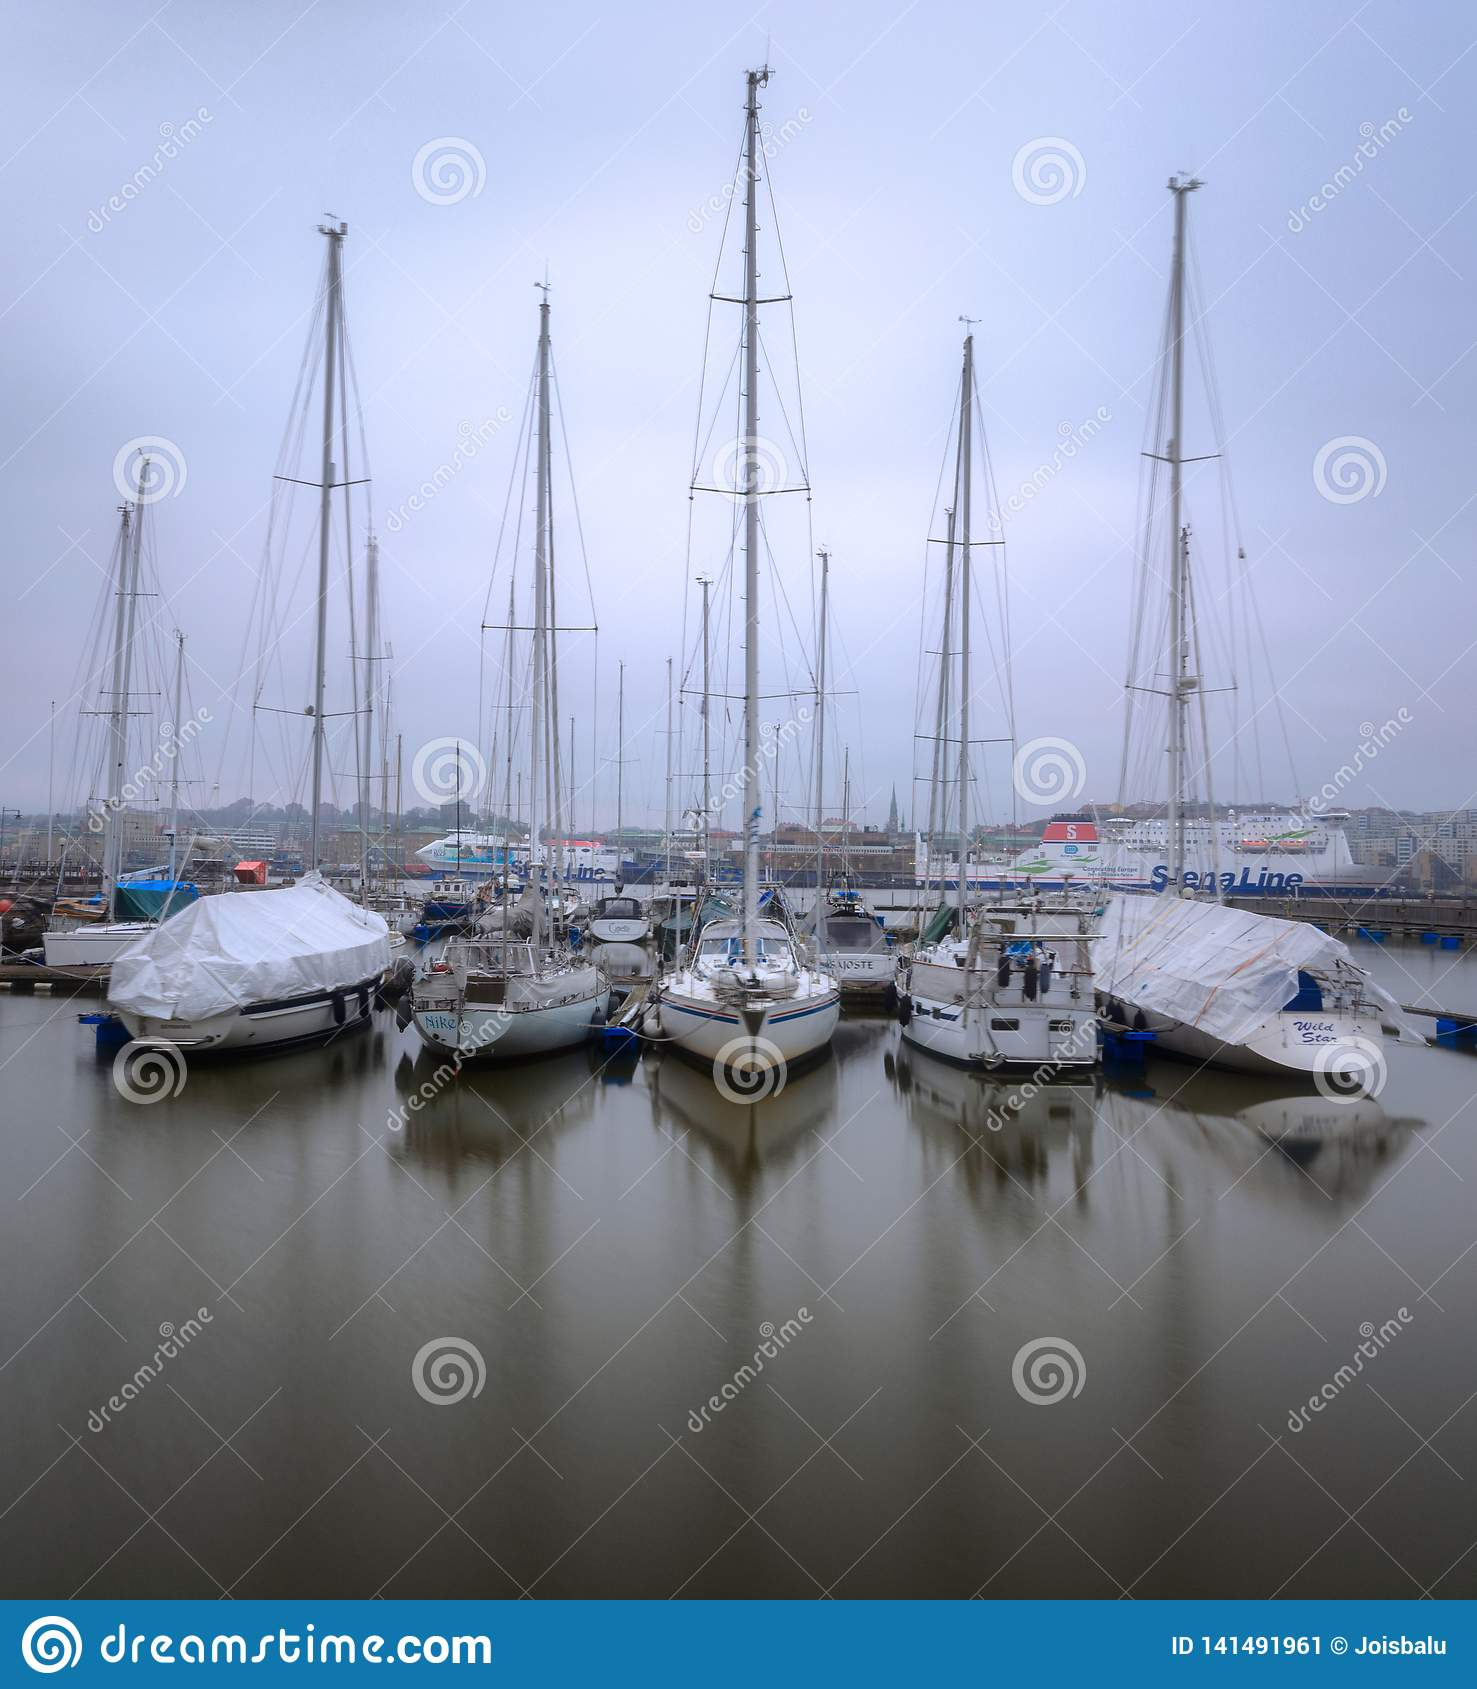 Parked boats in still water during a foggy morning